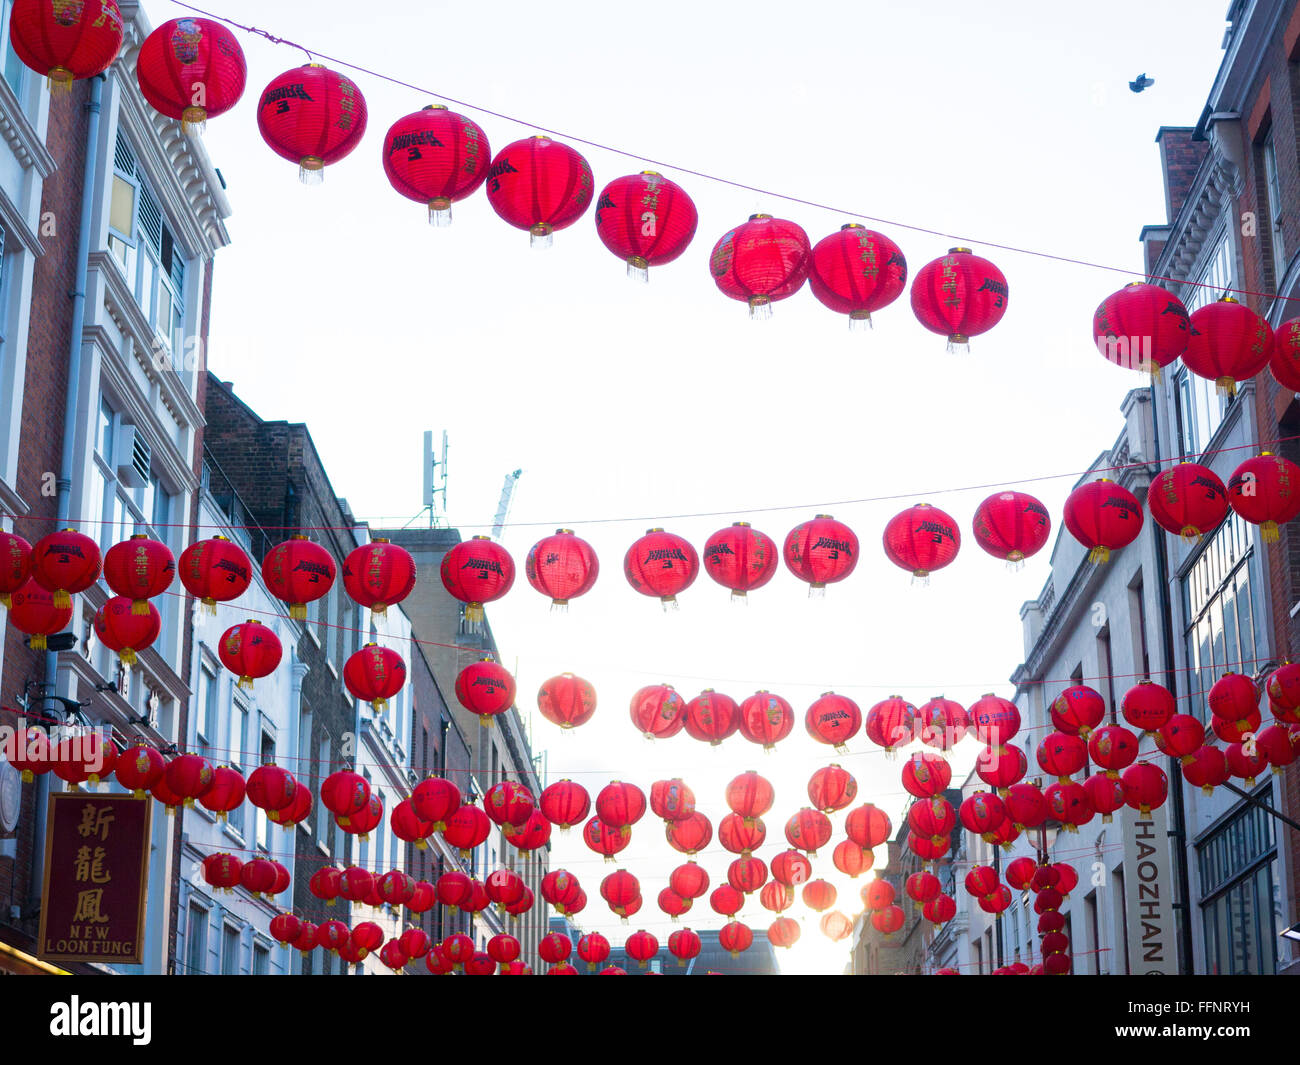 Lanterns from Chinese New Year in Chinatown Stock Photo